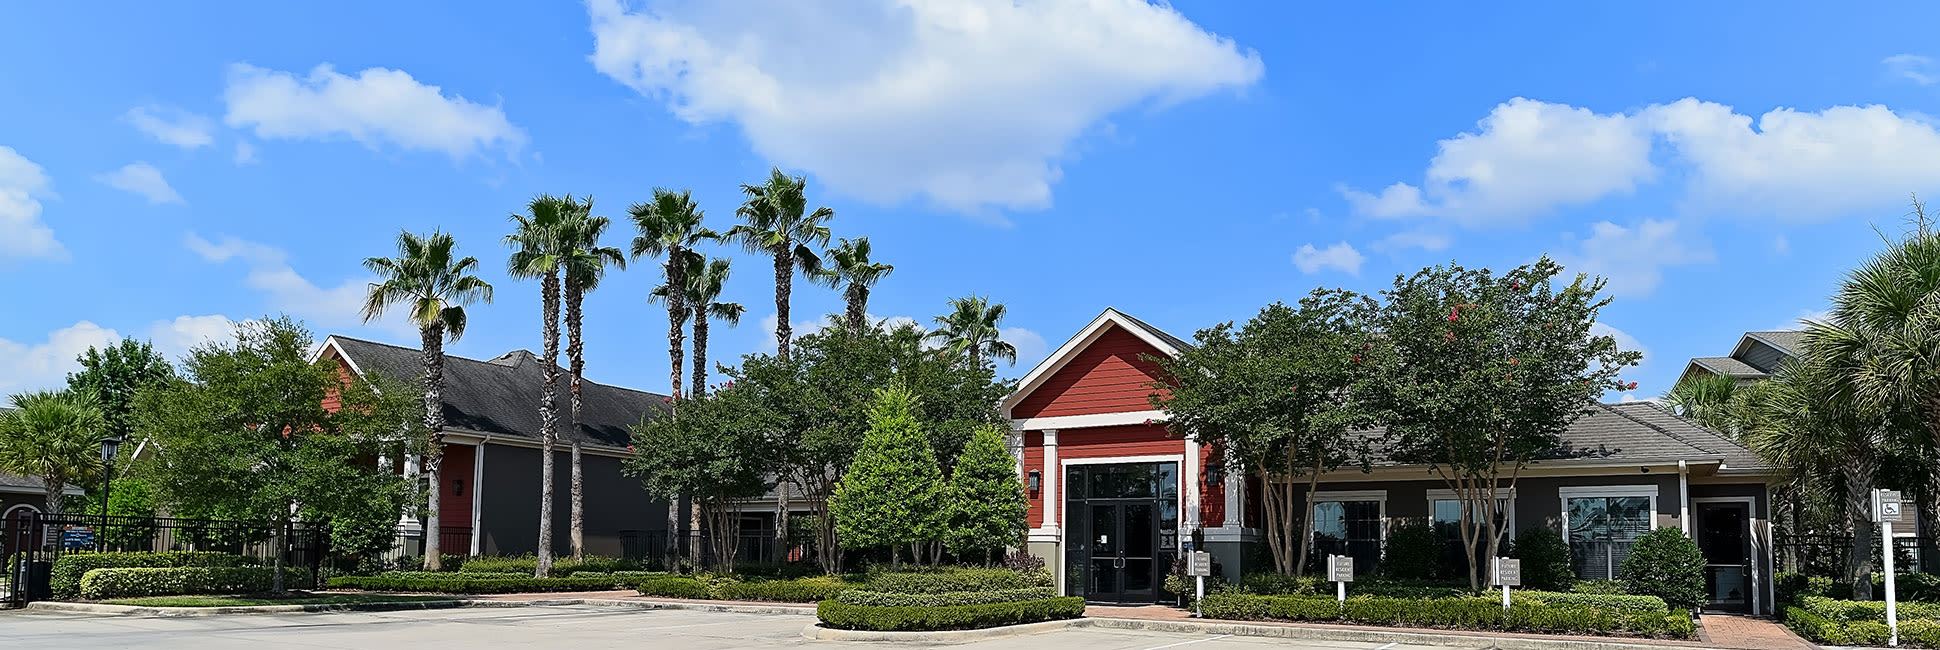 Baton Rouge apartments for rent have a wonderful neighborhood for the family